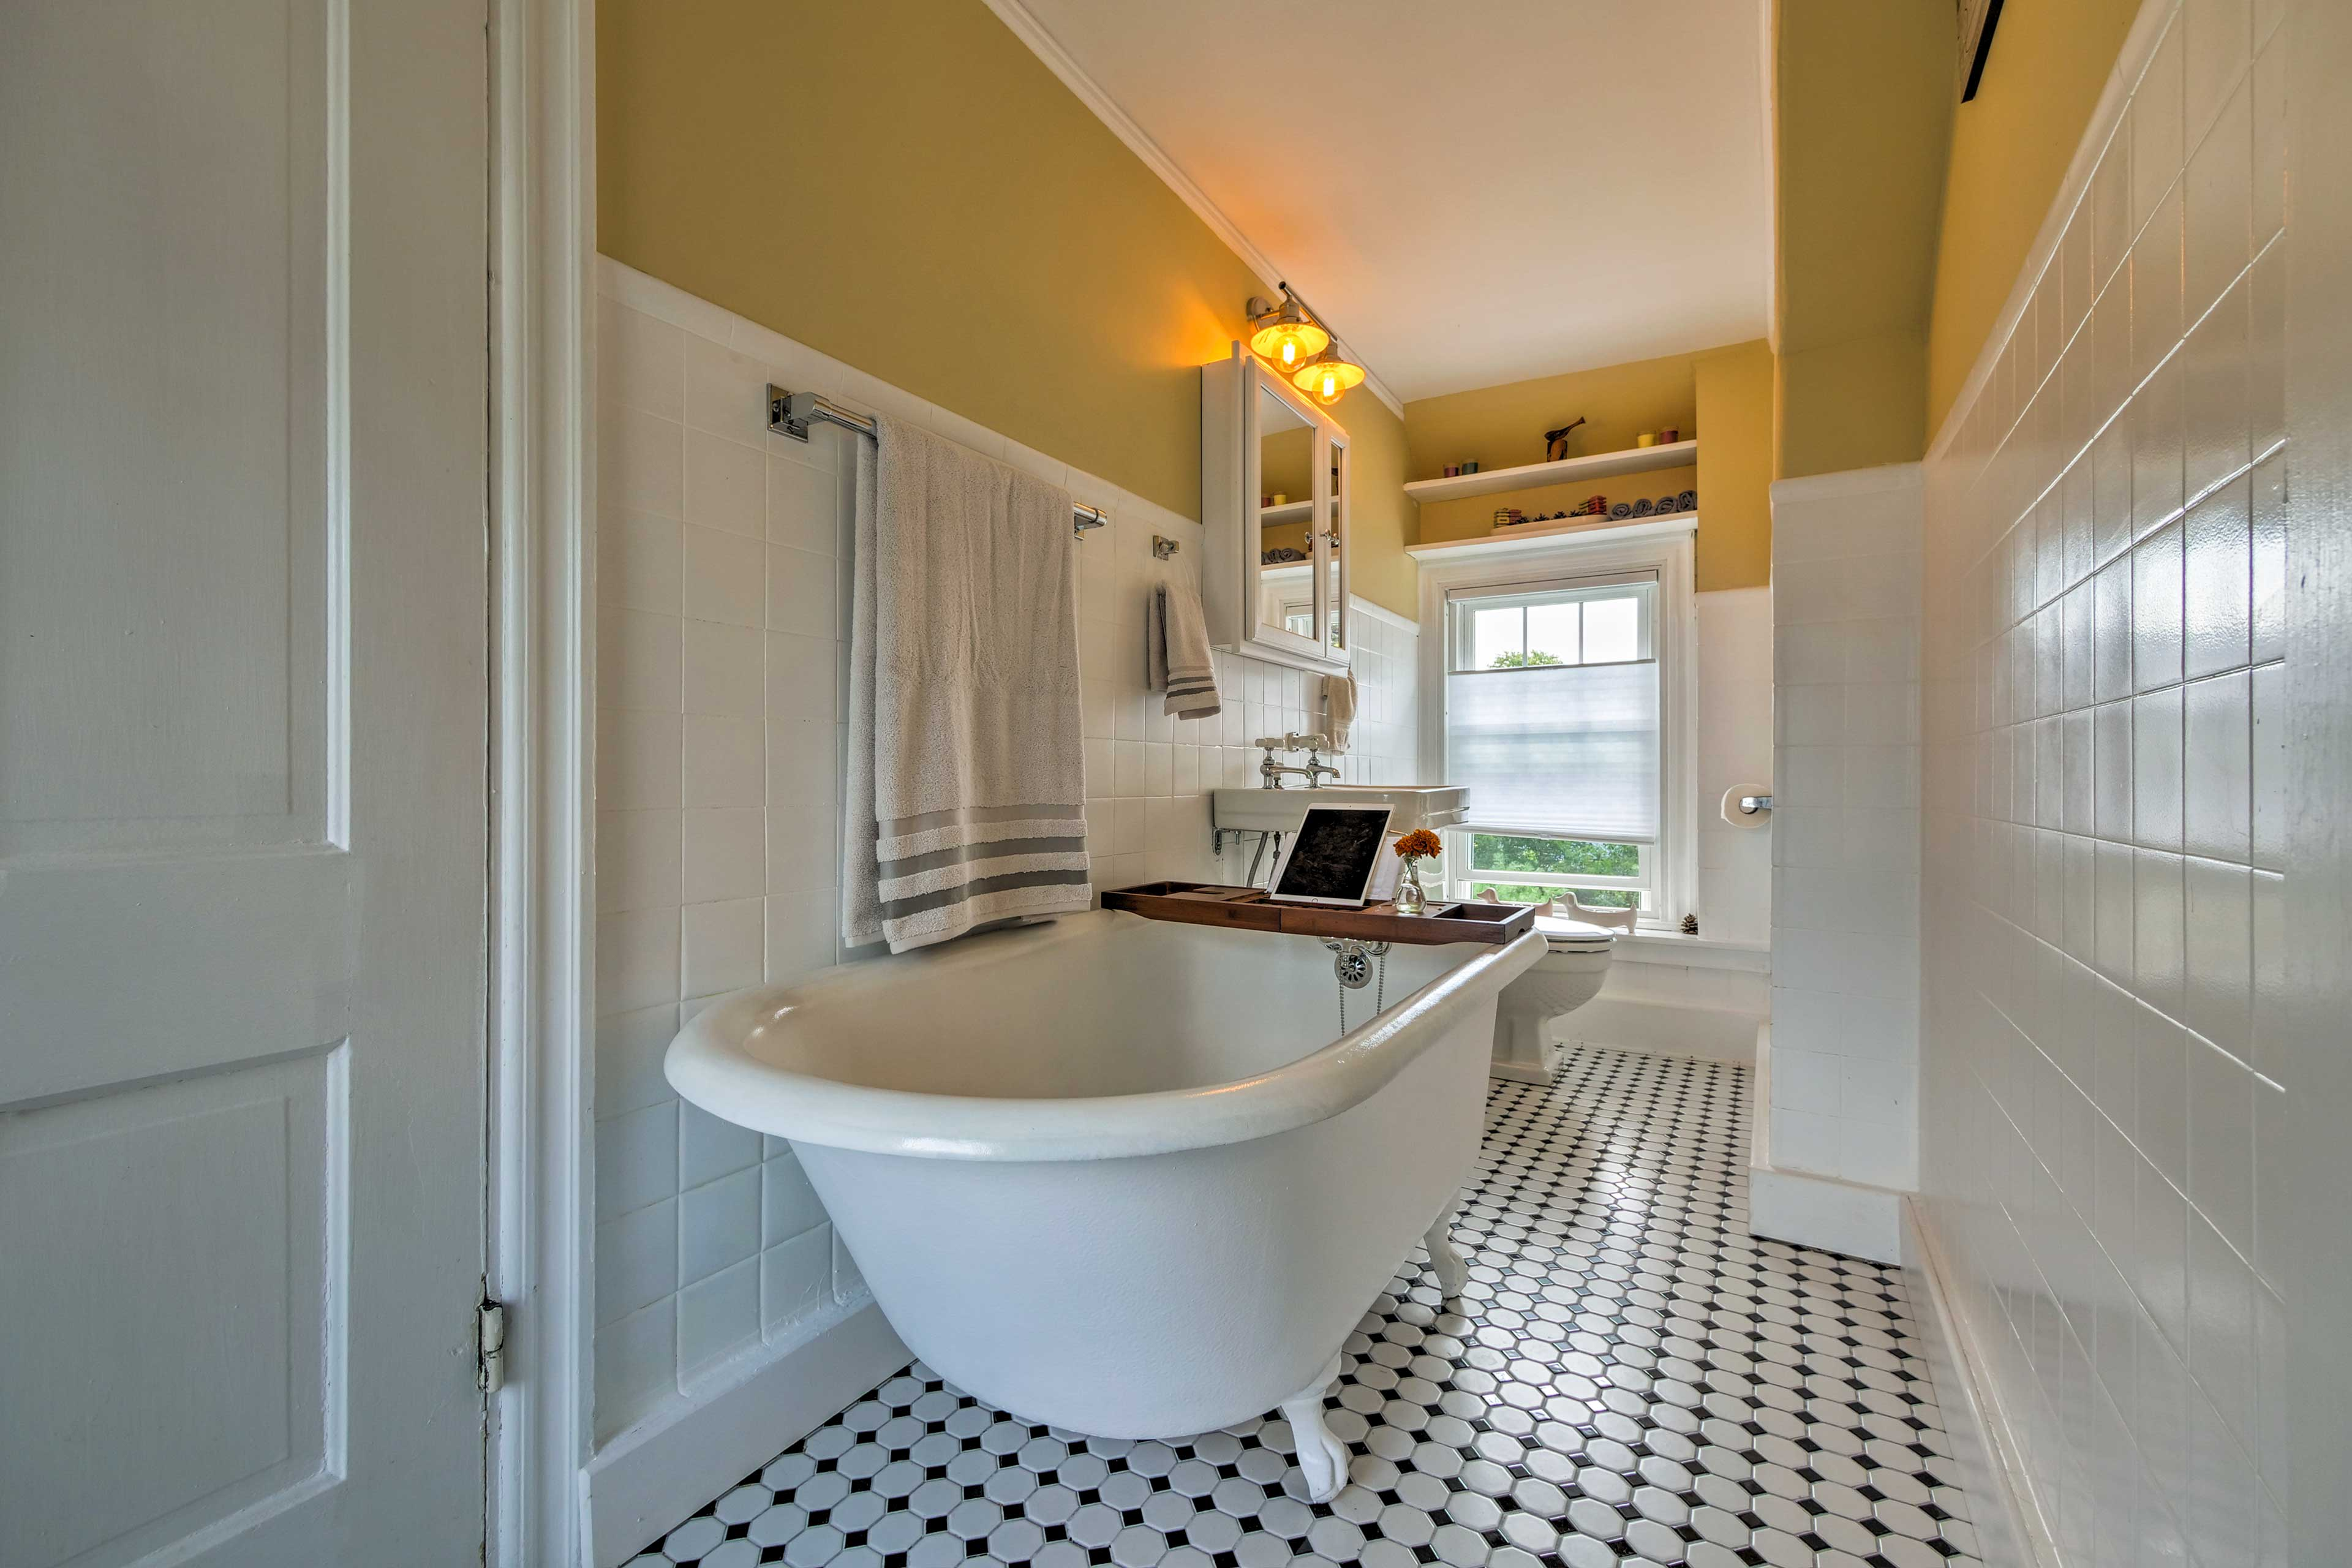 Go for a relaxing soak in this clawfoot tub.